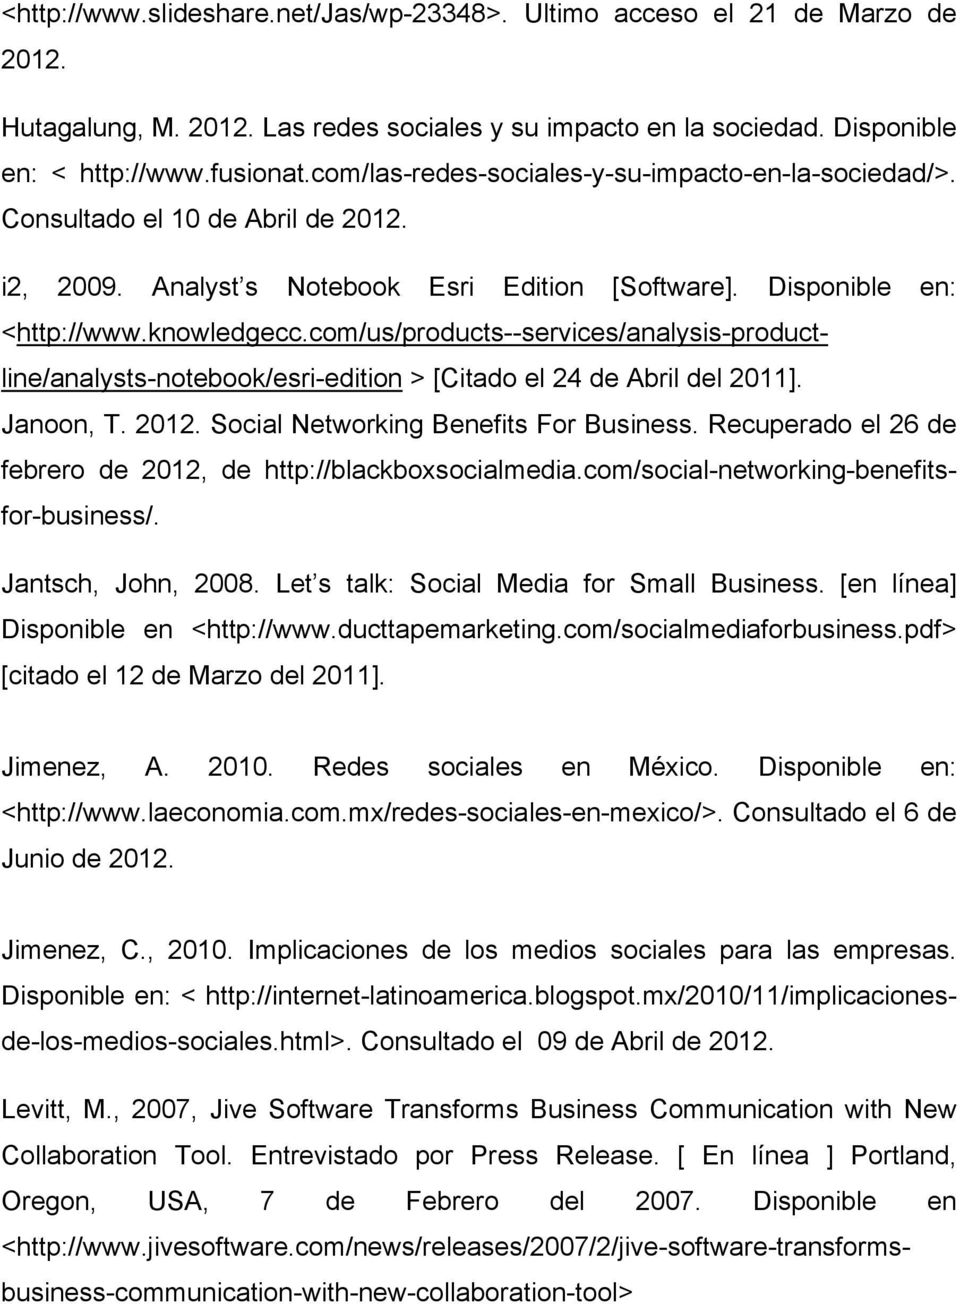 com/us/products--services/analysis-productline/analysts-notebook/esri-edition > [Citado el 24 de Abril del 2011]. Janoon, T. 2012. Social Networking Benefits For Business.